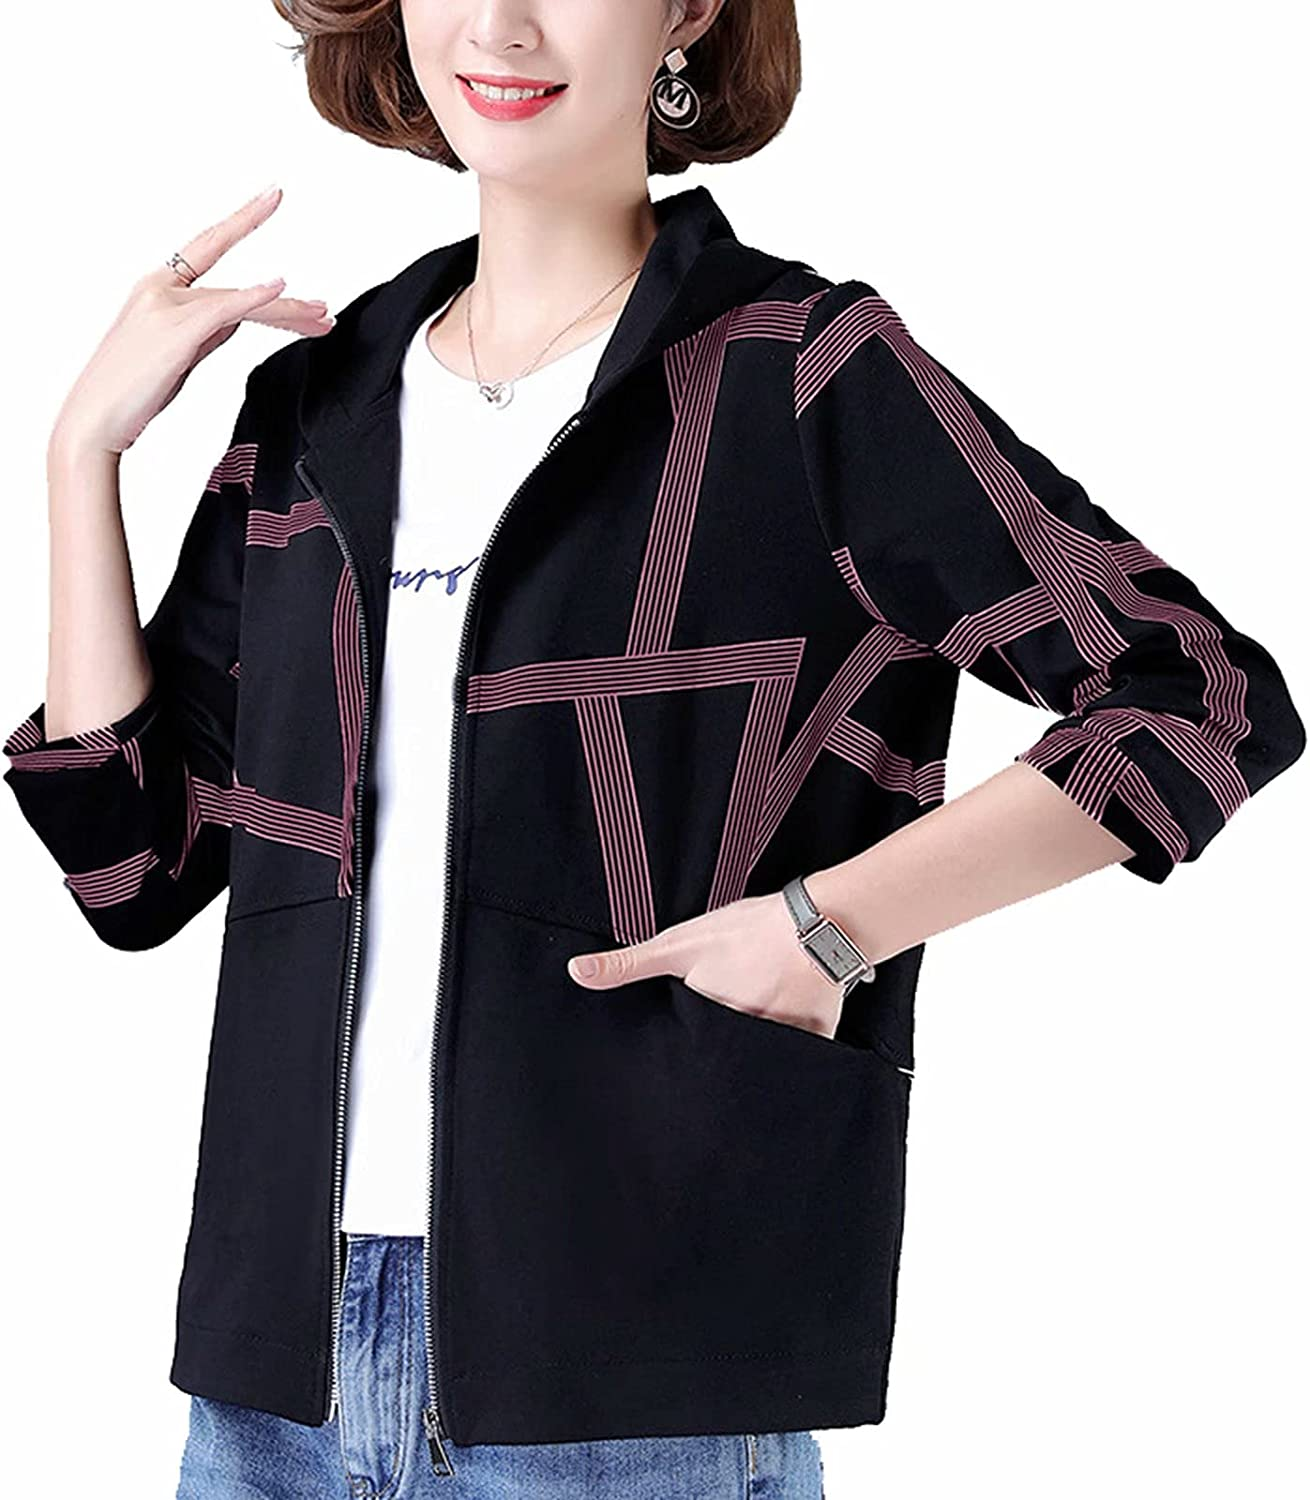 Women's jackets - elegant long-sleeved slim fit transition jacket, casual women short coats with pockets and zip,